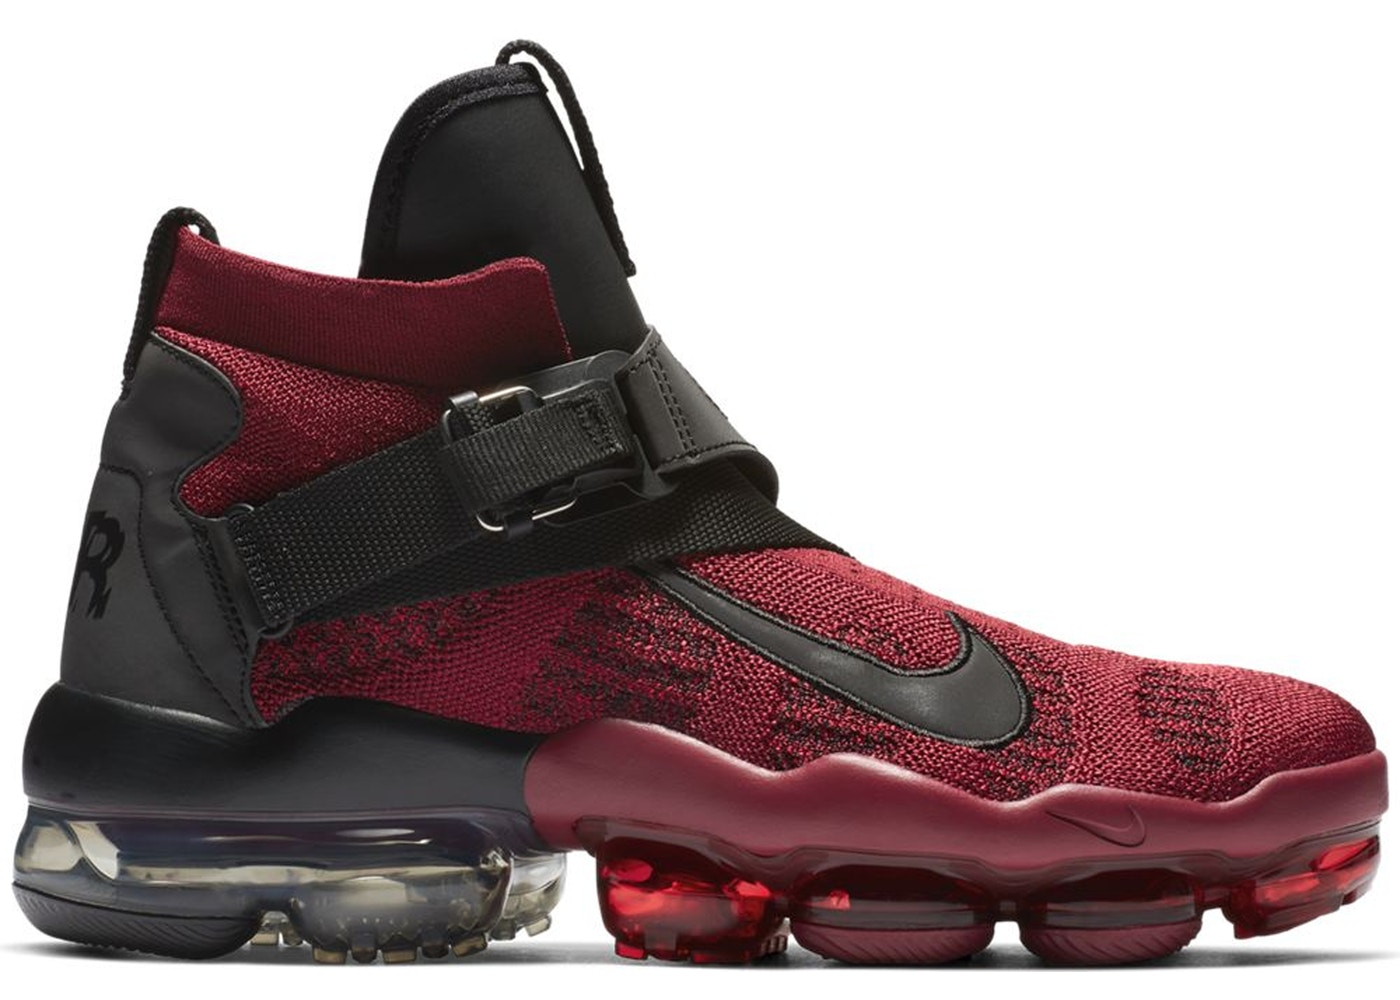 c00c6601d31c9 Air VaporMax Premier Flyknit Team Red - AO3241-600